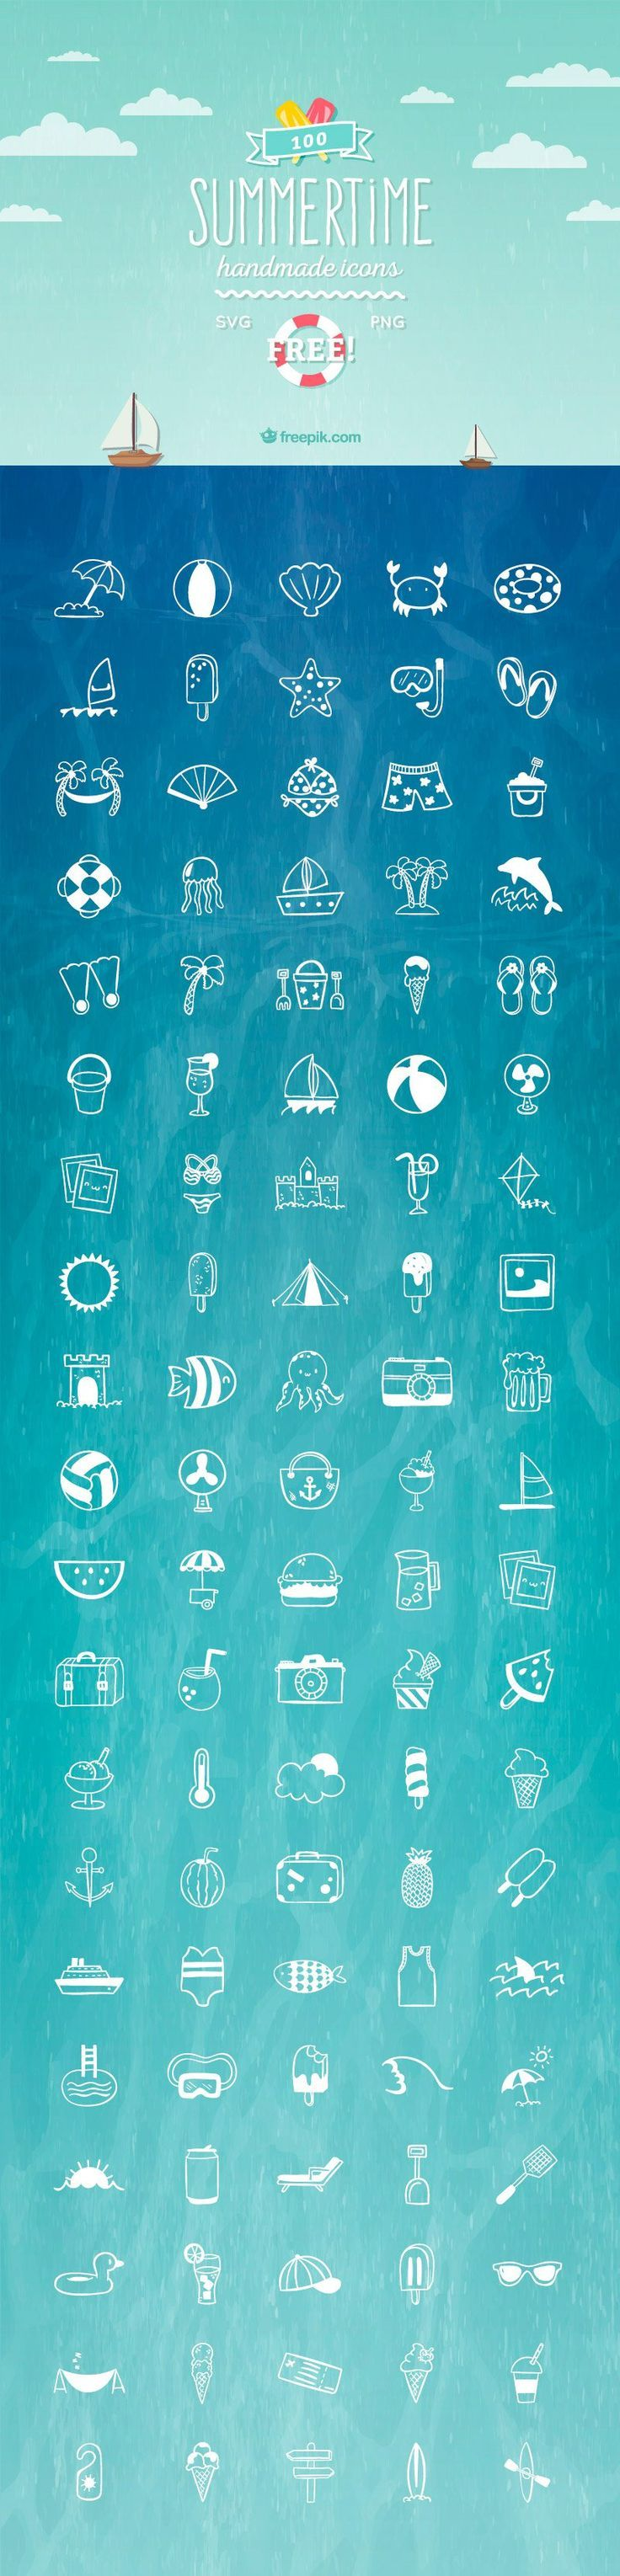 Free Icons For Web And User Interface